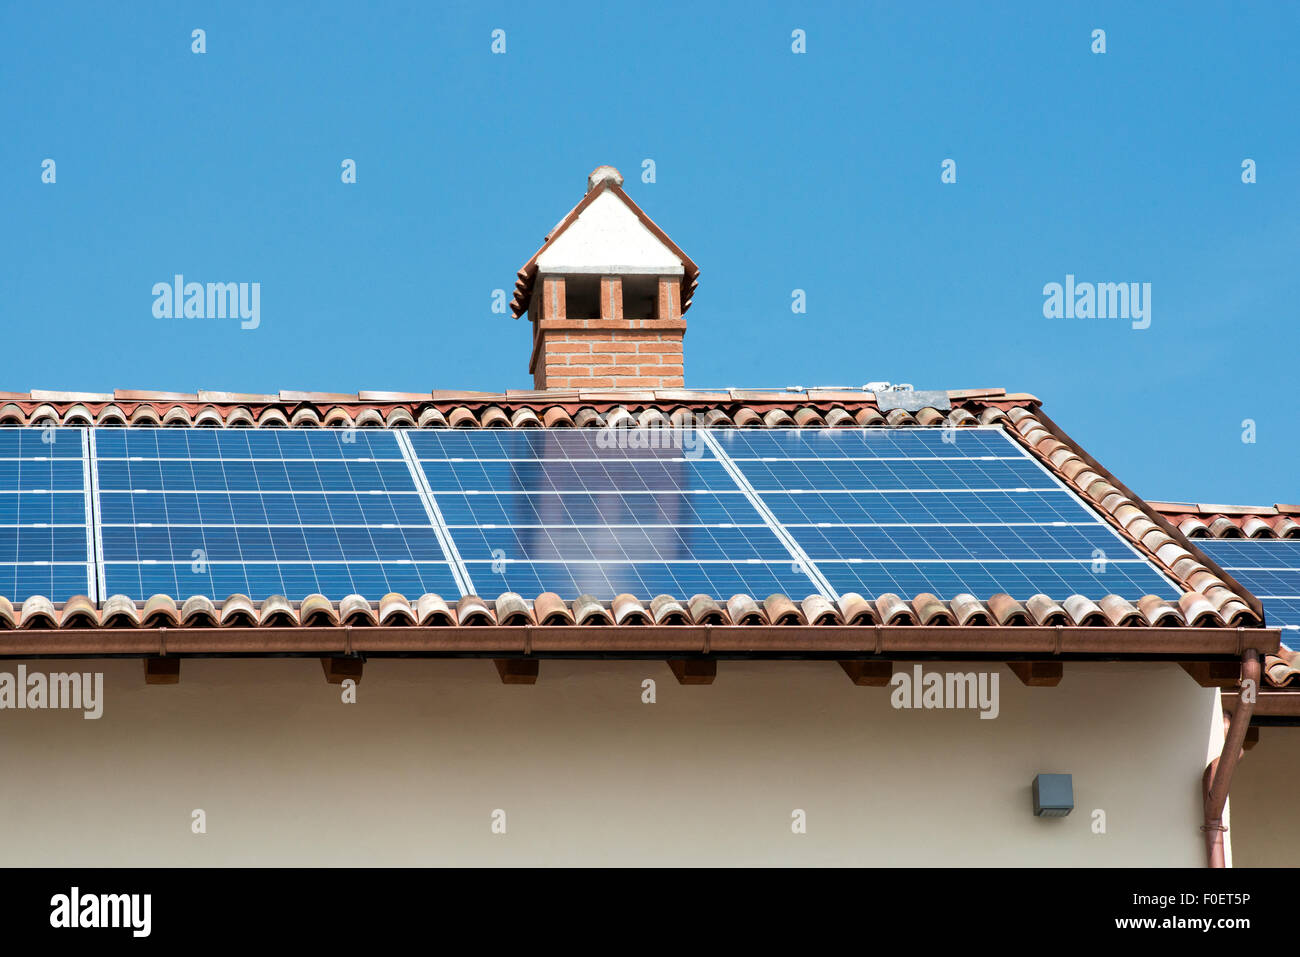 Photovoltaic solar panels on the roof of a building - Stock Image